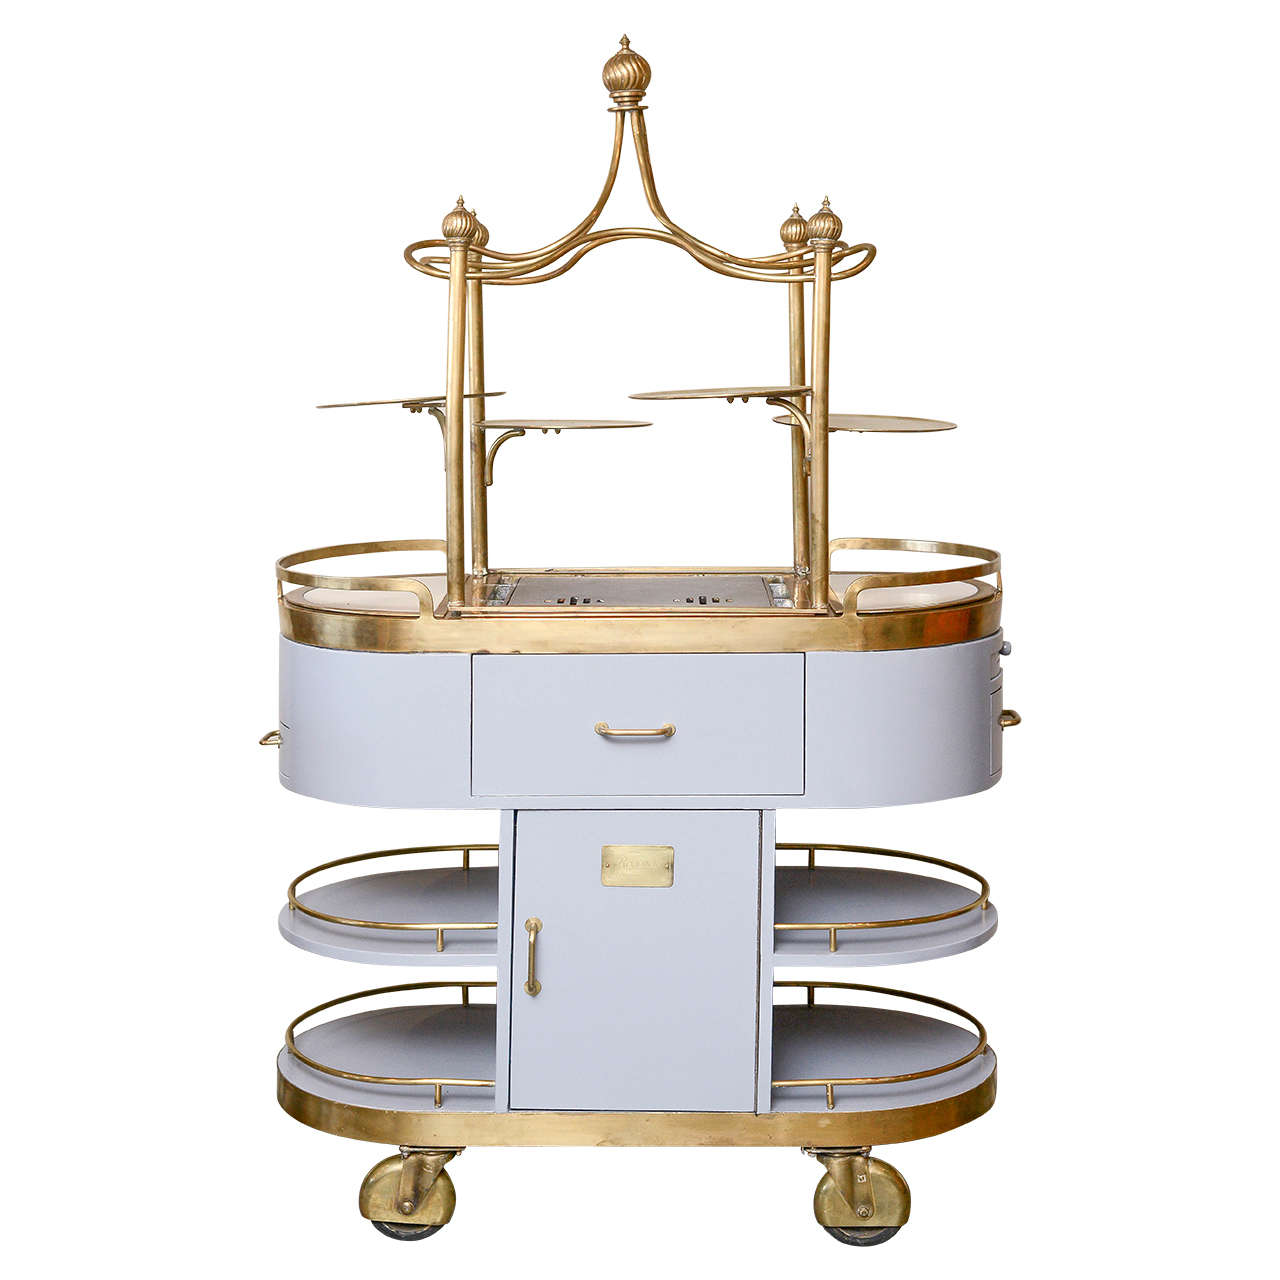 American art nouveau style food cart mid 20th century at for American nouveau cuisine